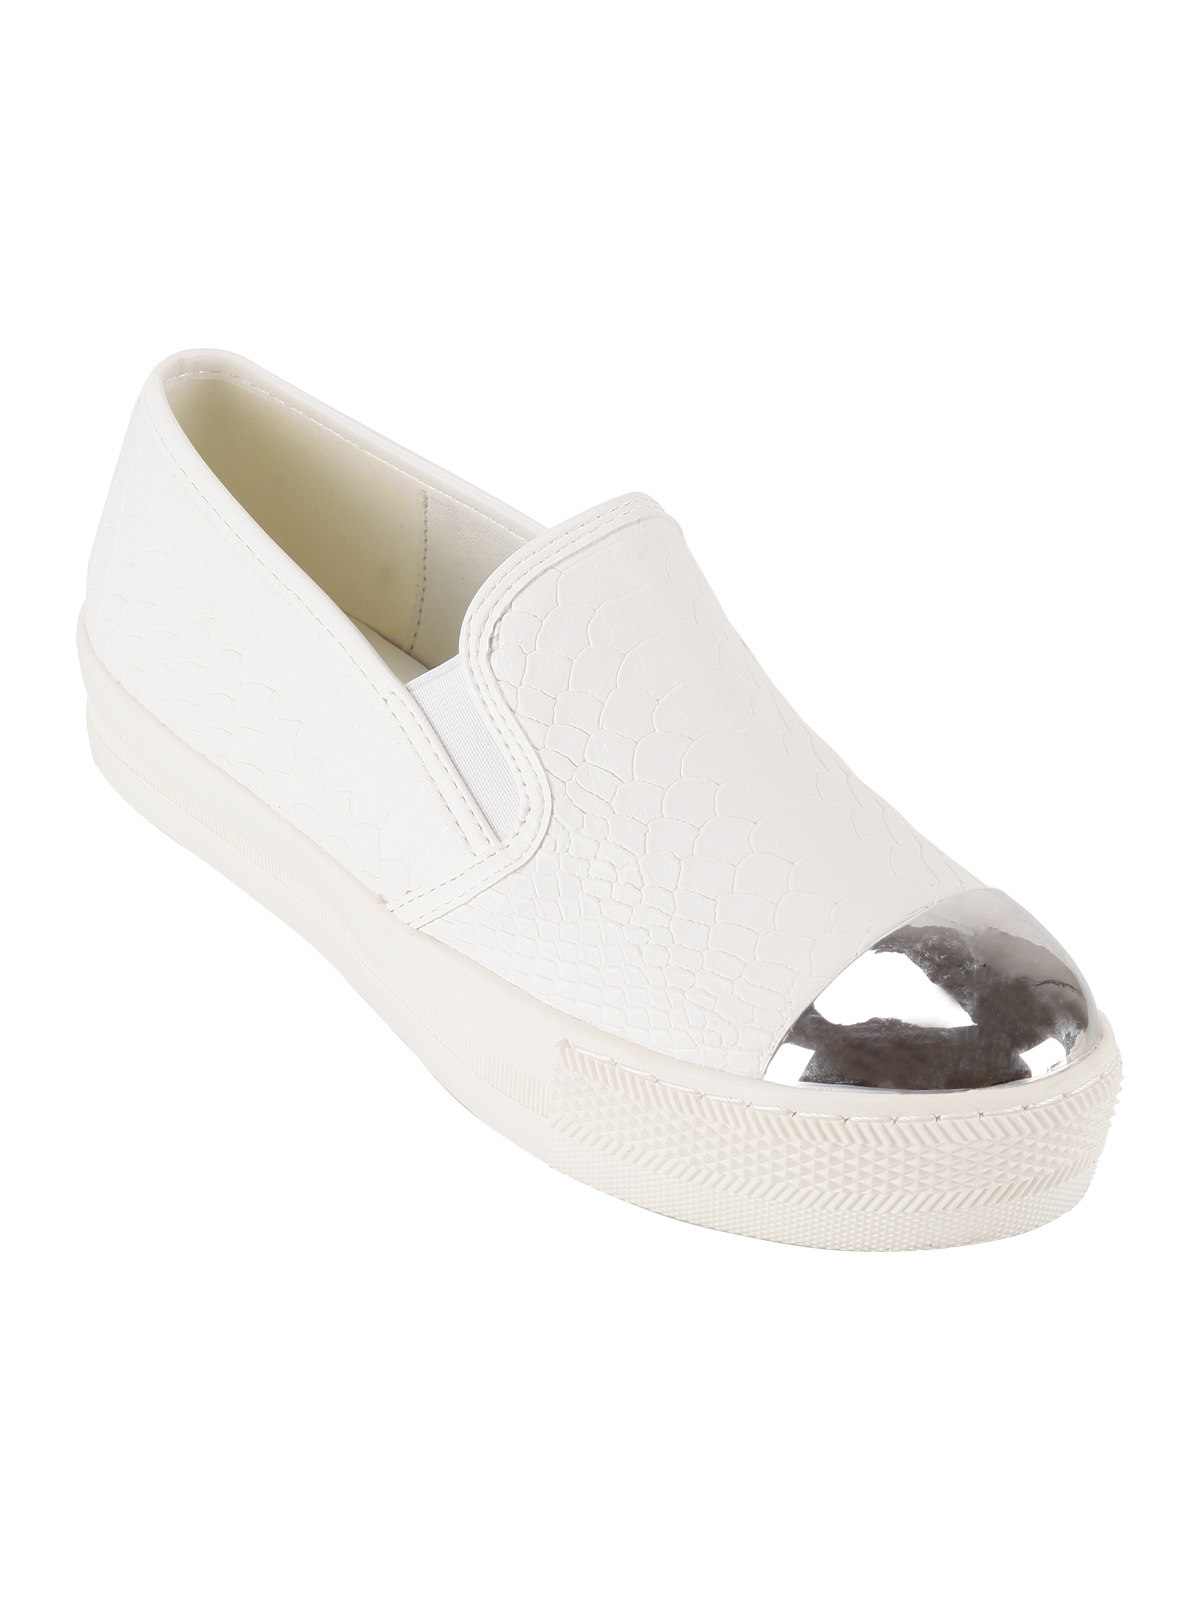 DAME ROSE Low Sneakers Shoes Without Laces